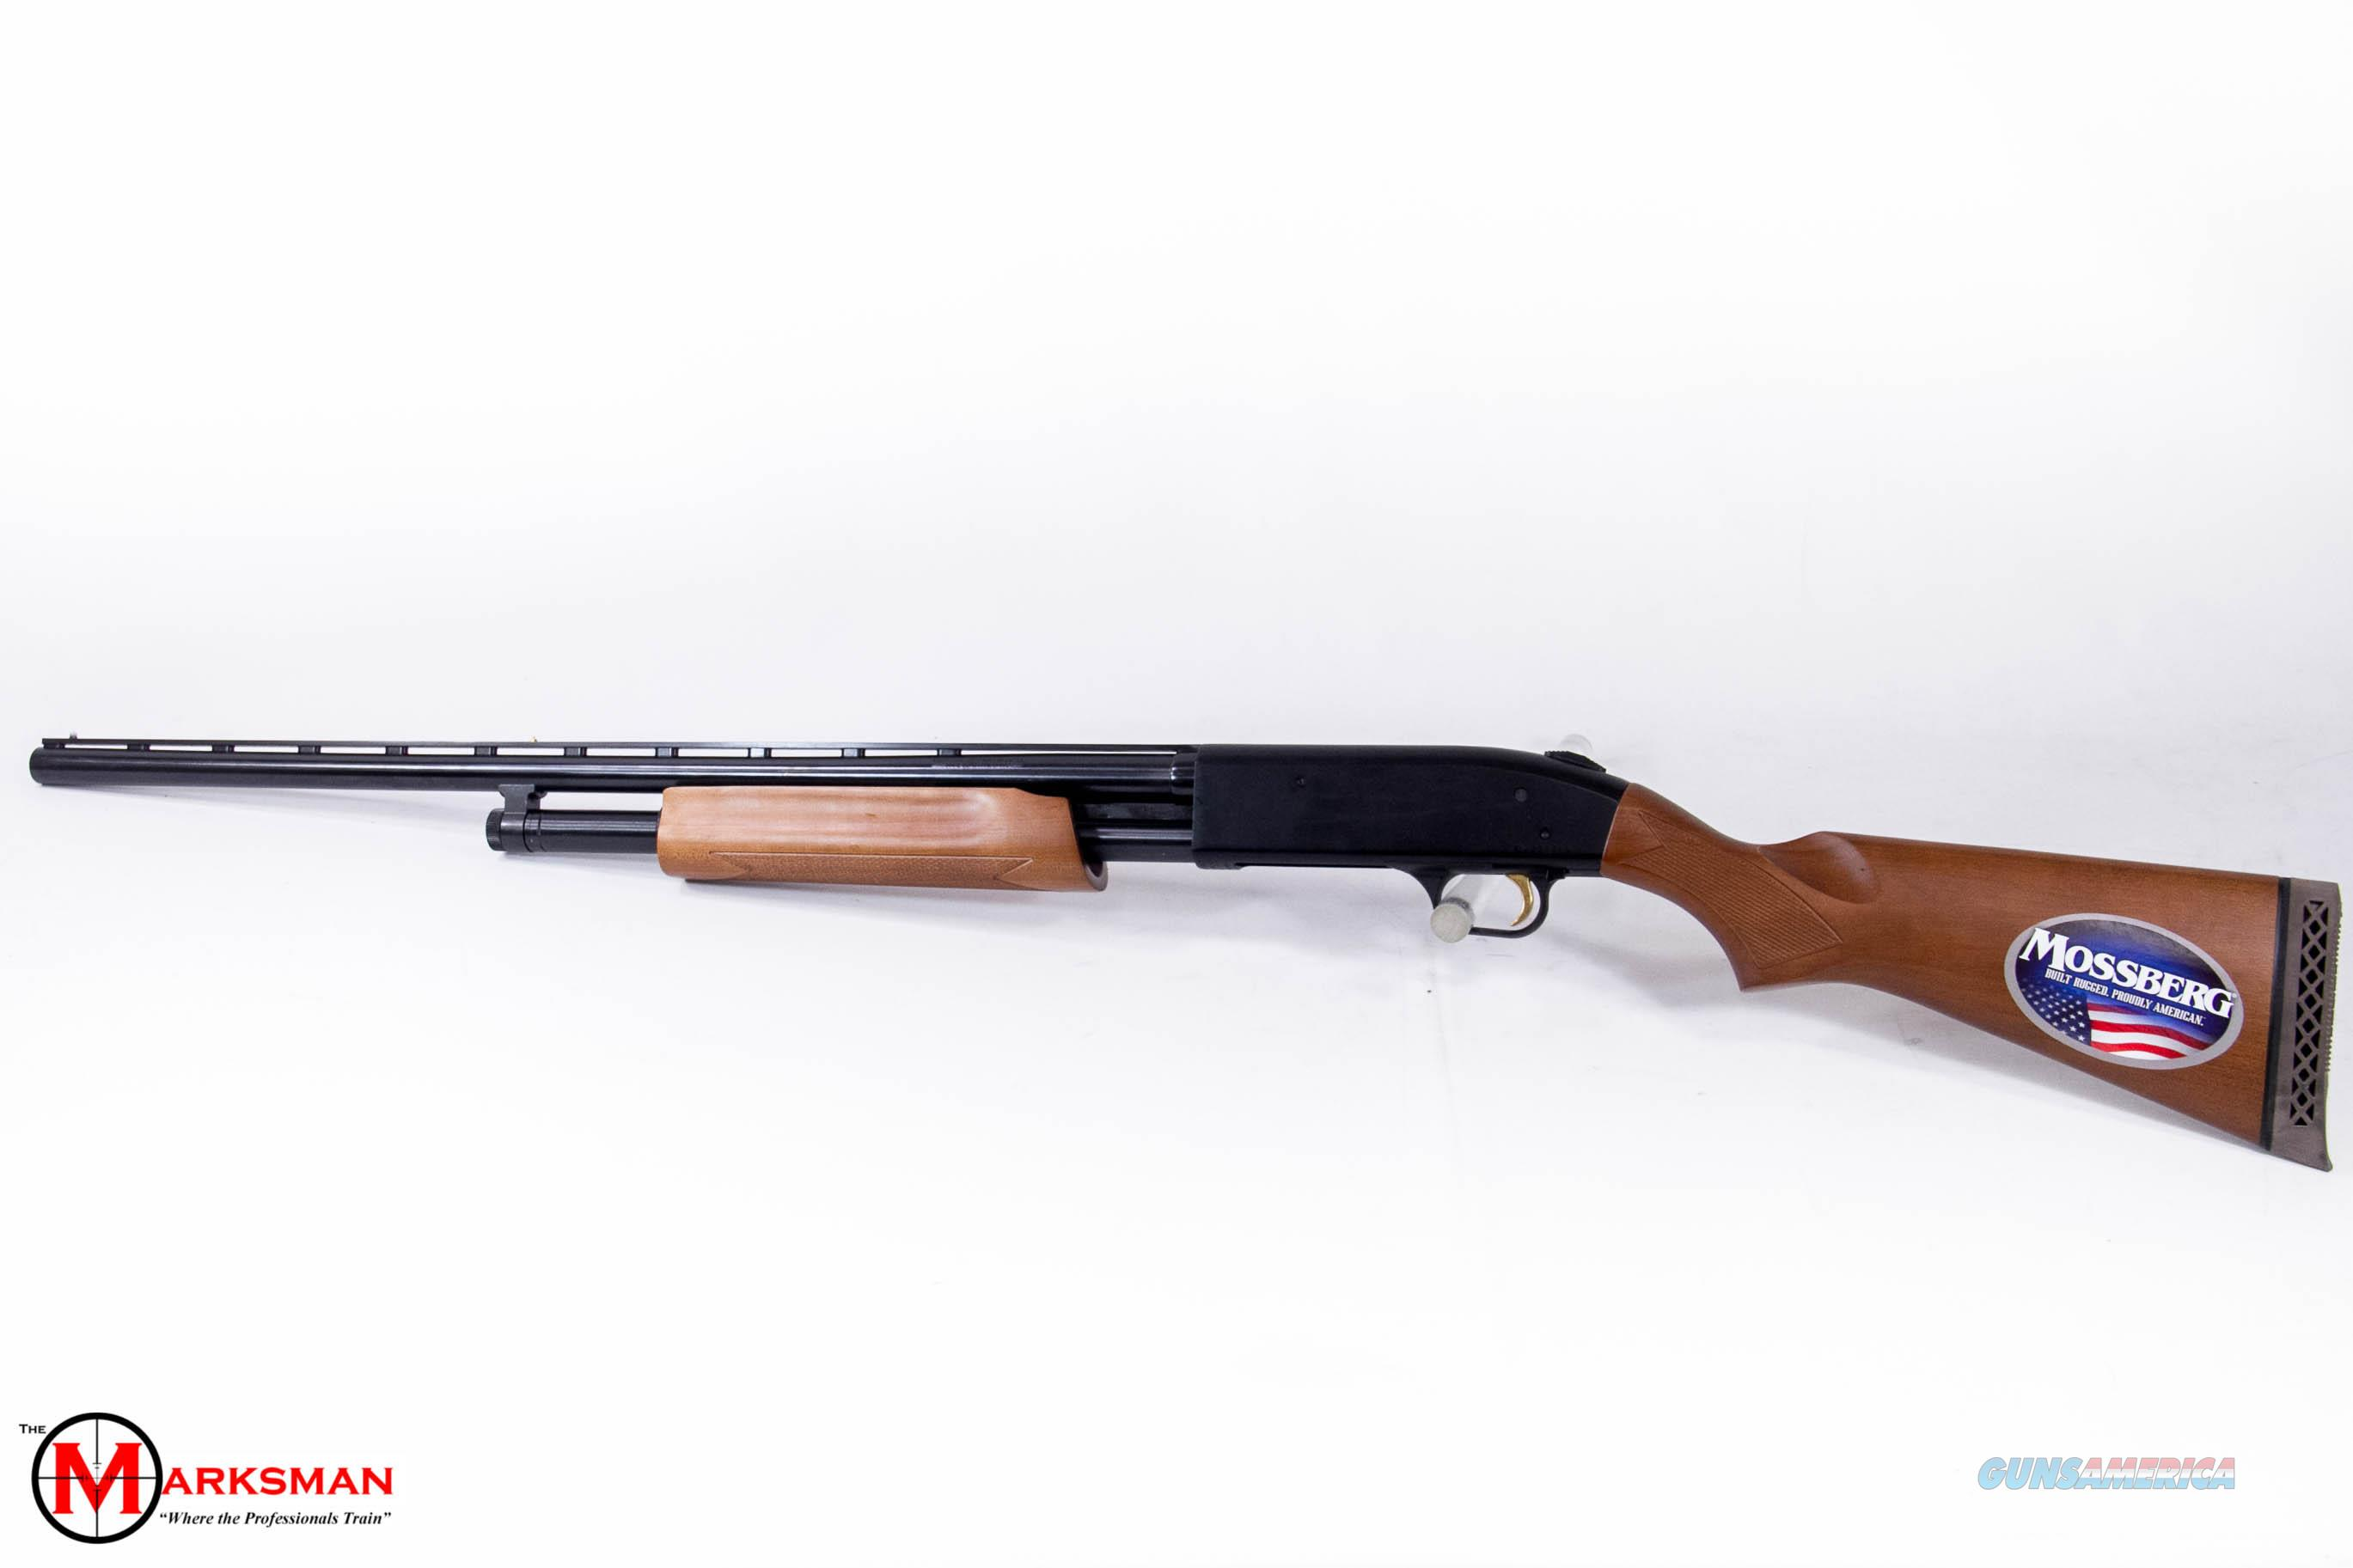 Mossberg 500 Hunting All Purpose Field, 20 Gauge   Guns > Shotguns > Mossberg Shotguns > Pump > Sporting